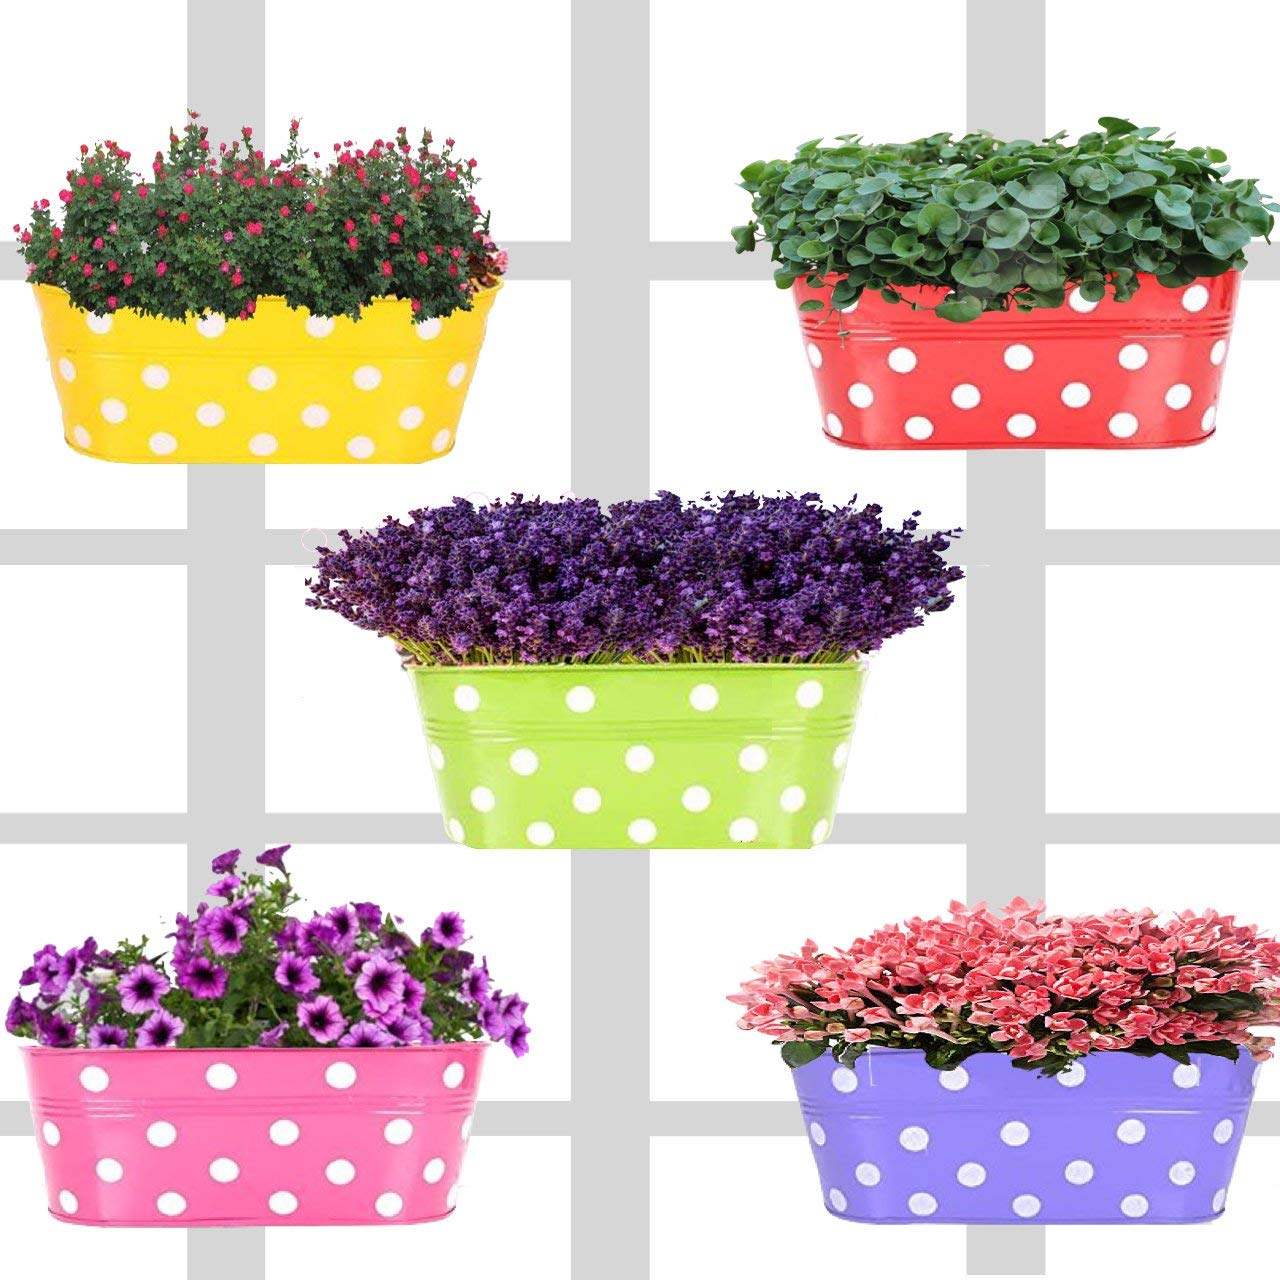 Bison International Polka Dotted Oval Railing Planters Balcony Garden; Multicolour - Pack of 5 product image